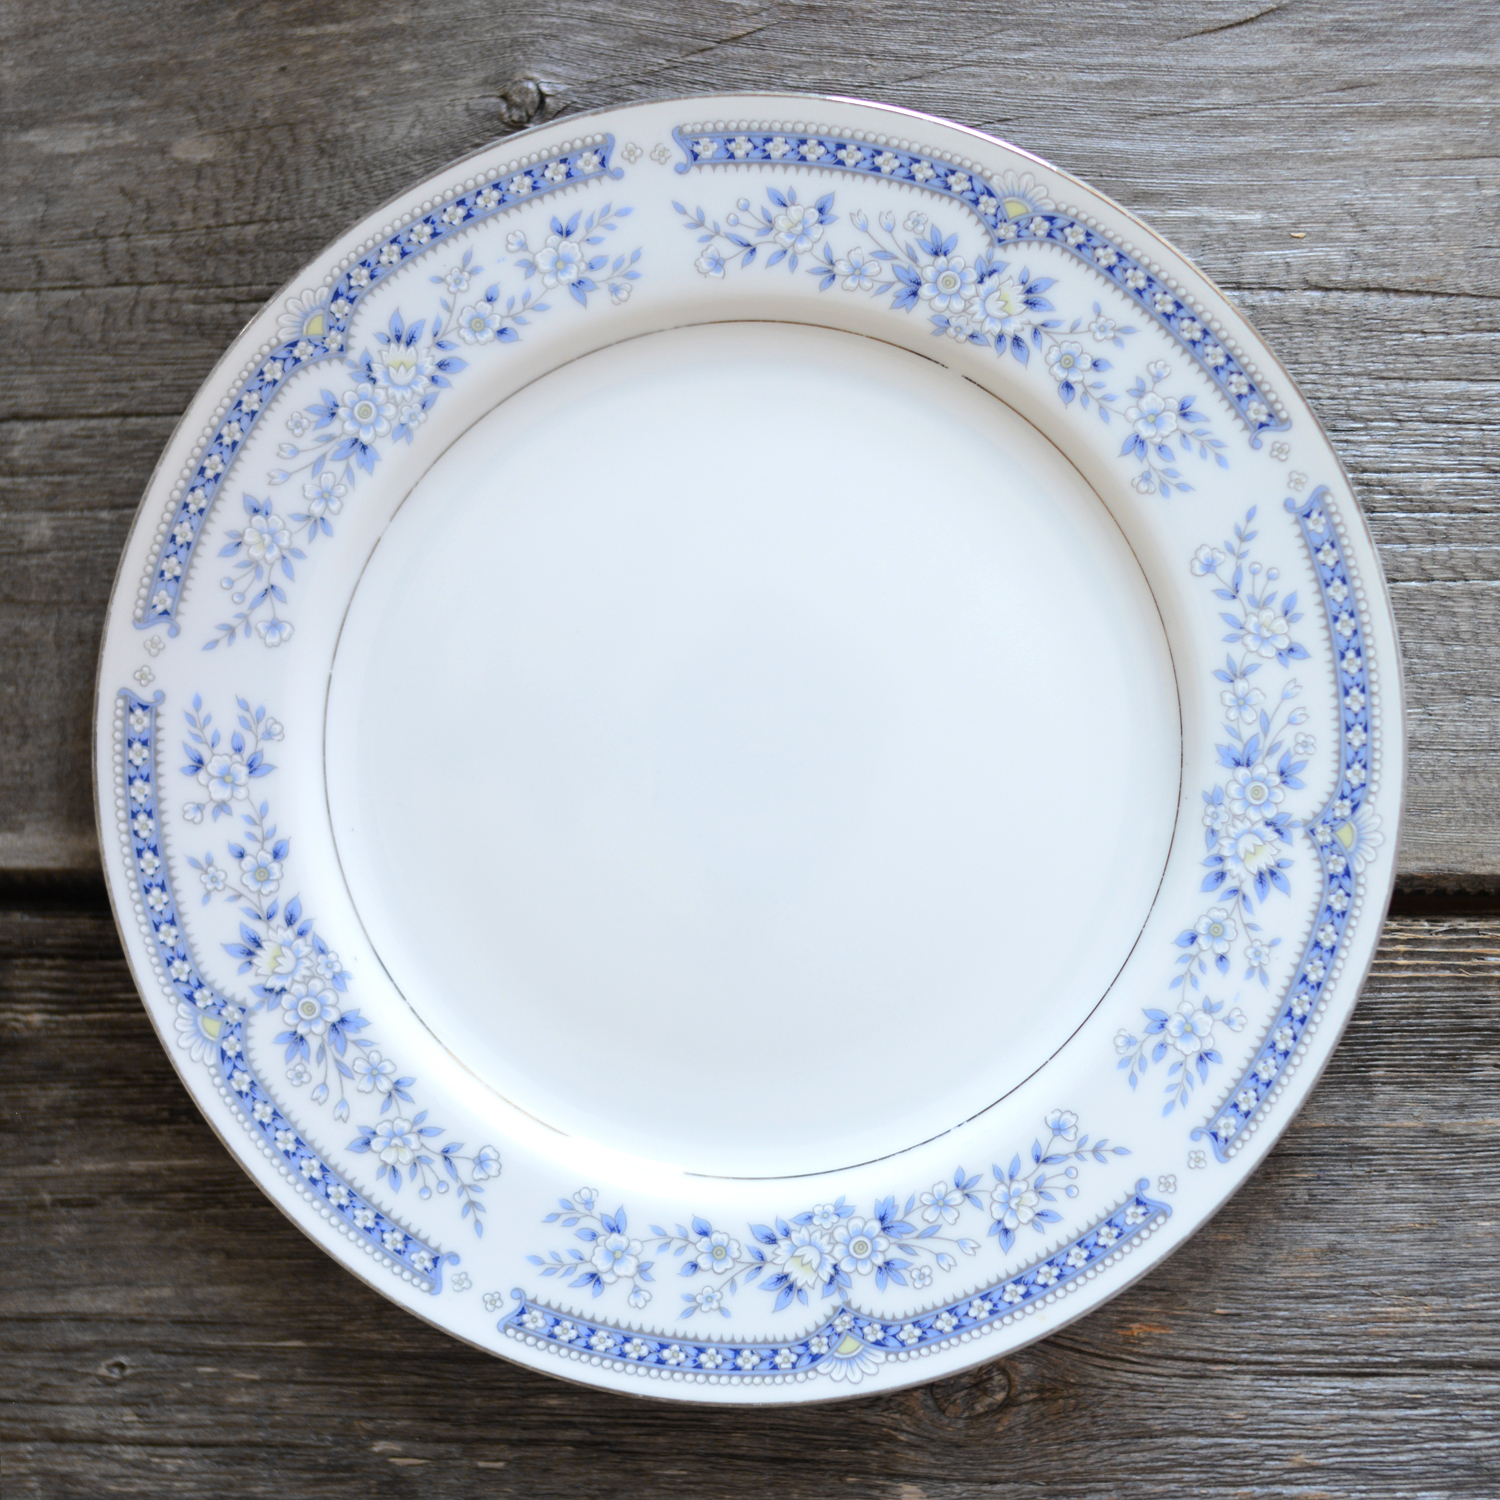 chamberlain dinner plate - 7 available